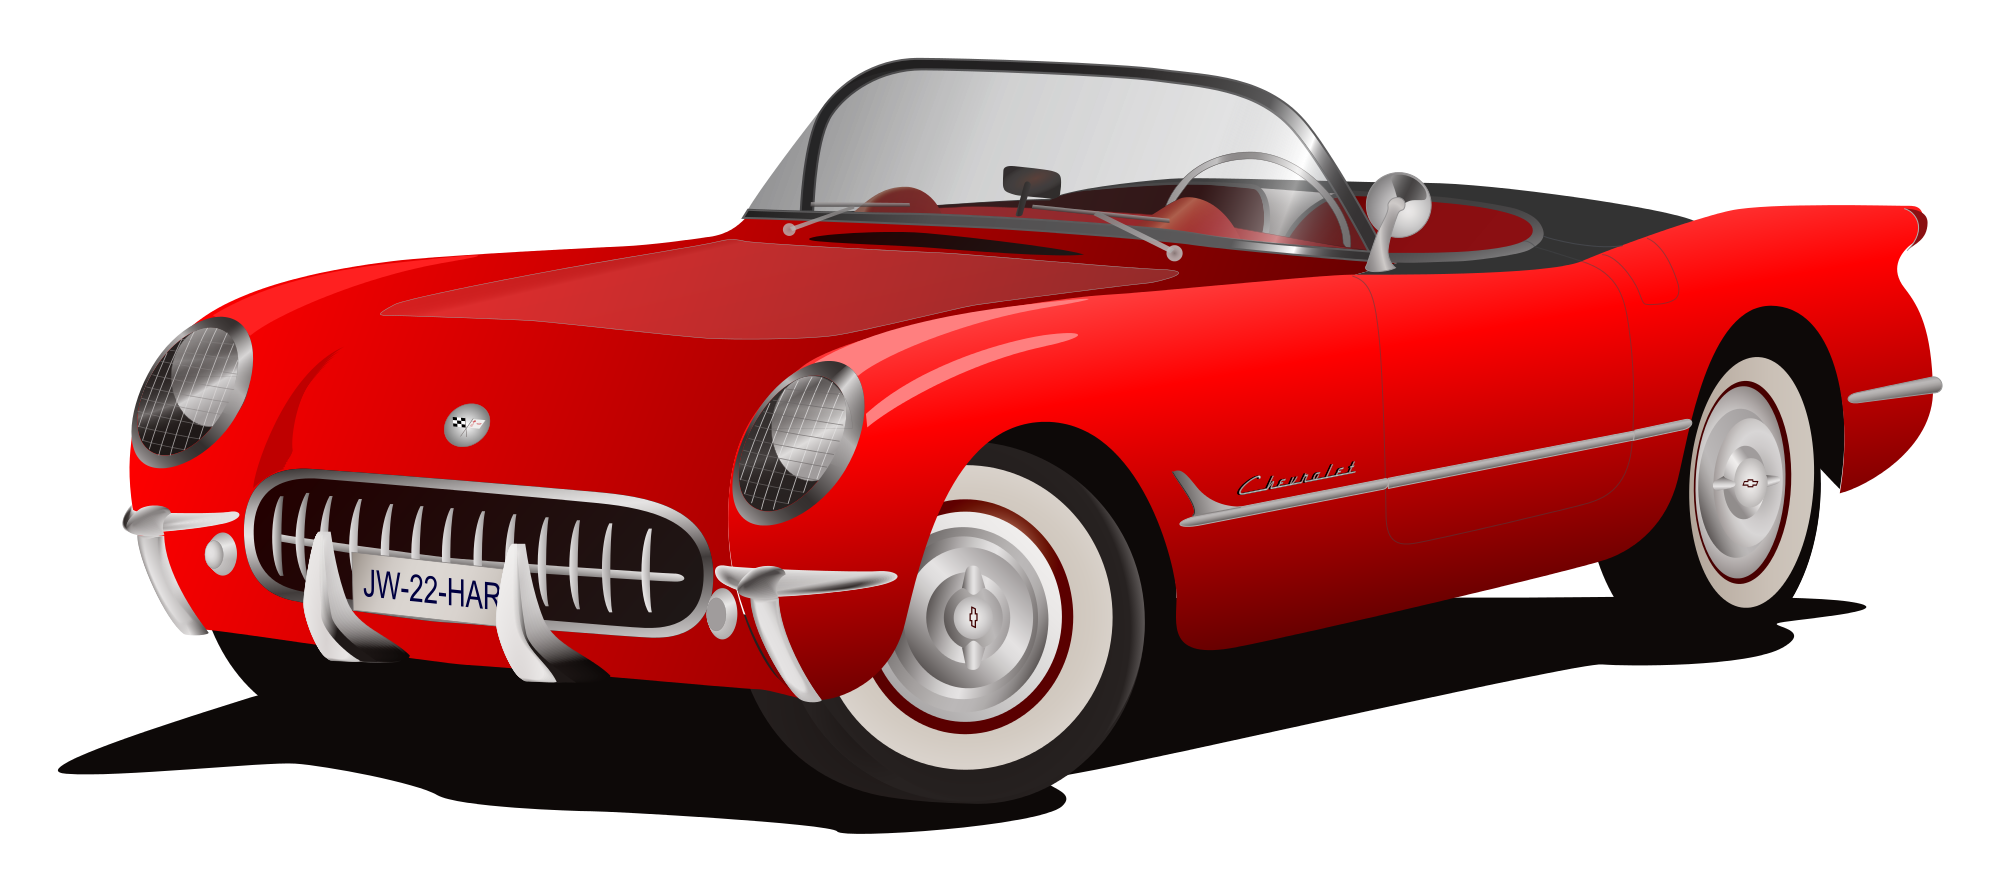 Library car clipart vector freeuse library Classic car clipart fast car #31564 - free Classic car clipart fast ... vector freeuse library